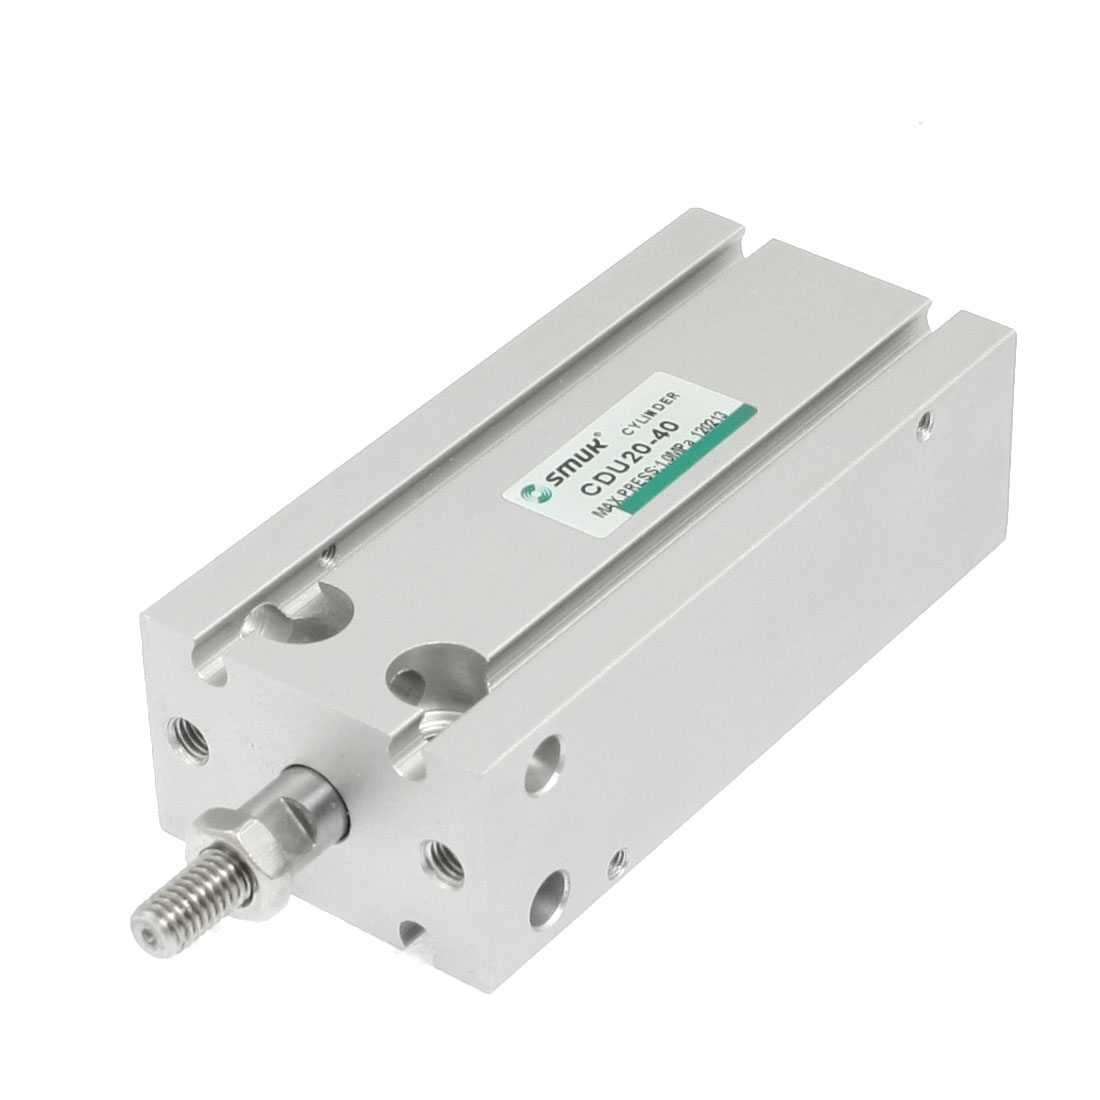 CDU 20-40 Single Rod Double Acting Pneumatic Air Cylinder